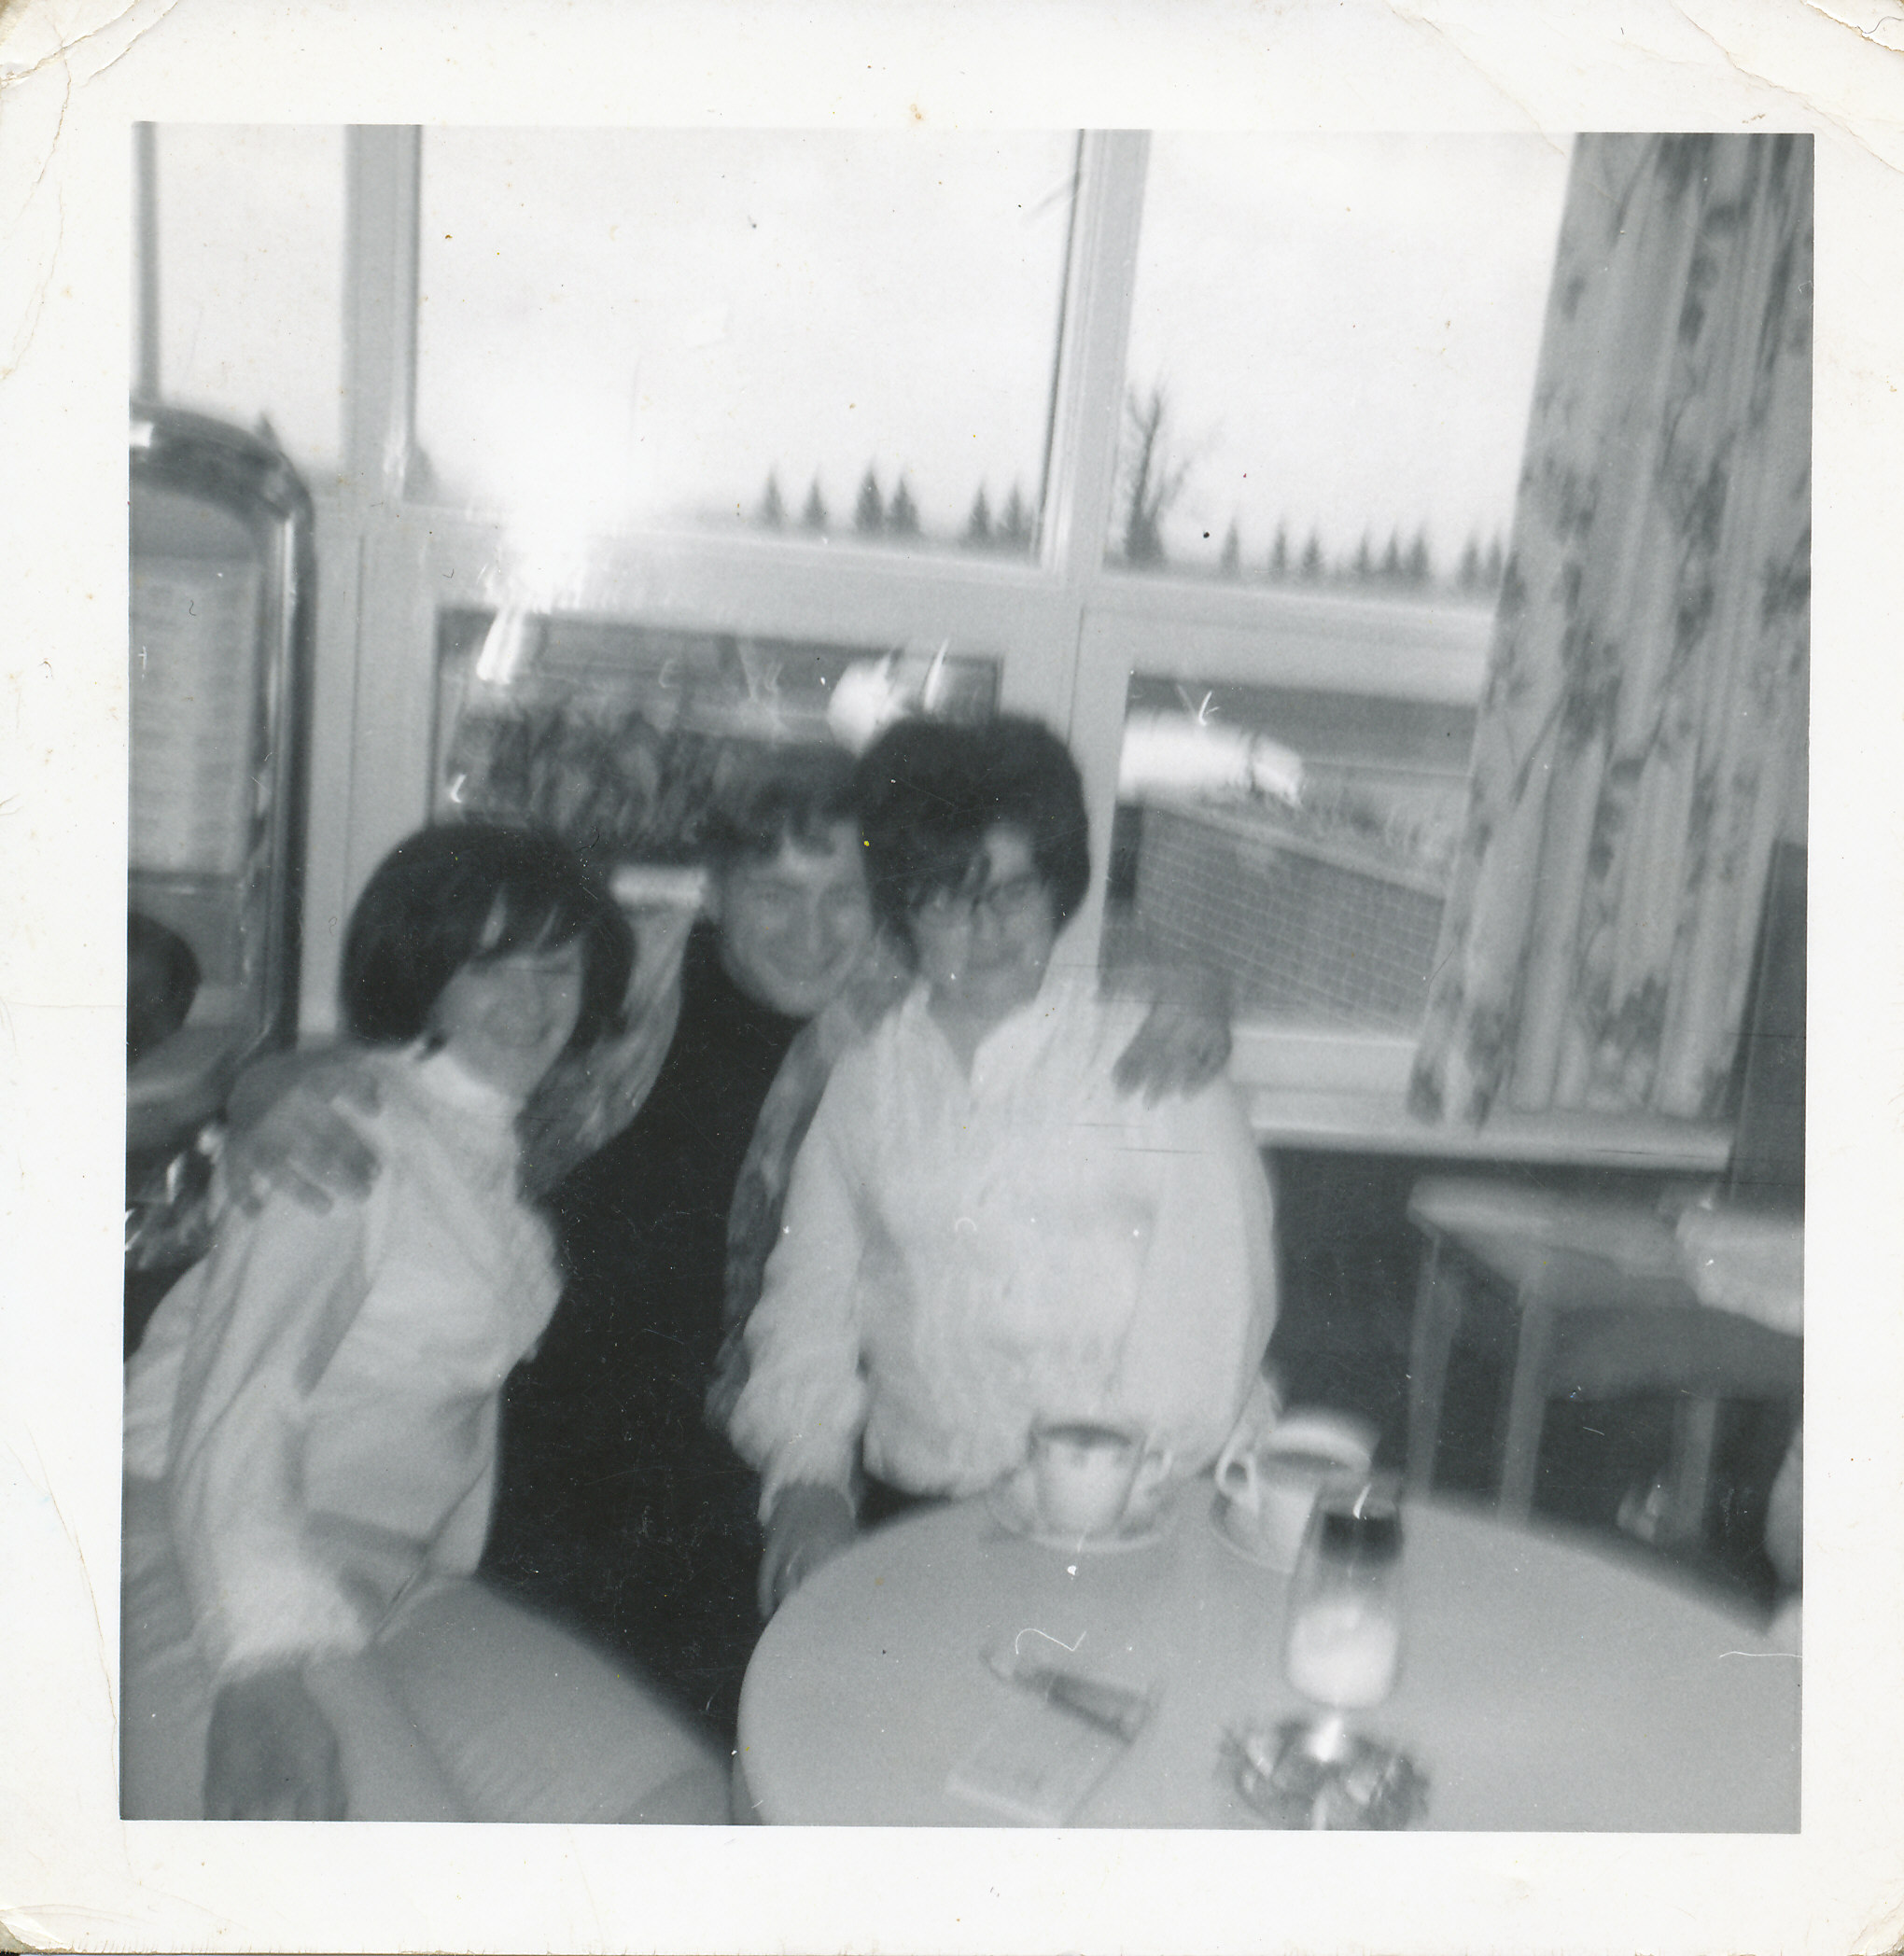 3 young people sitting at cafeteria table with coffee cups